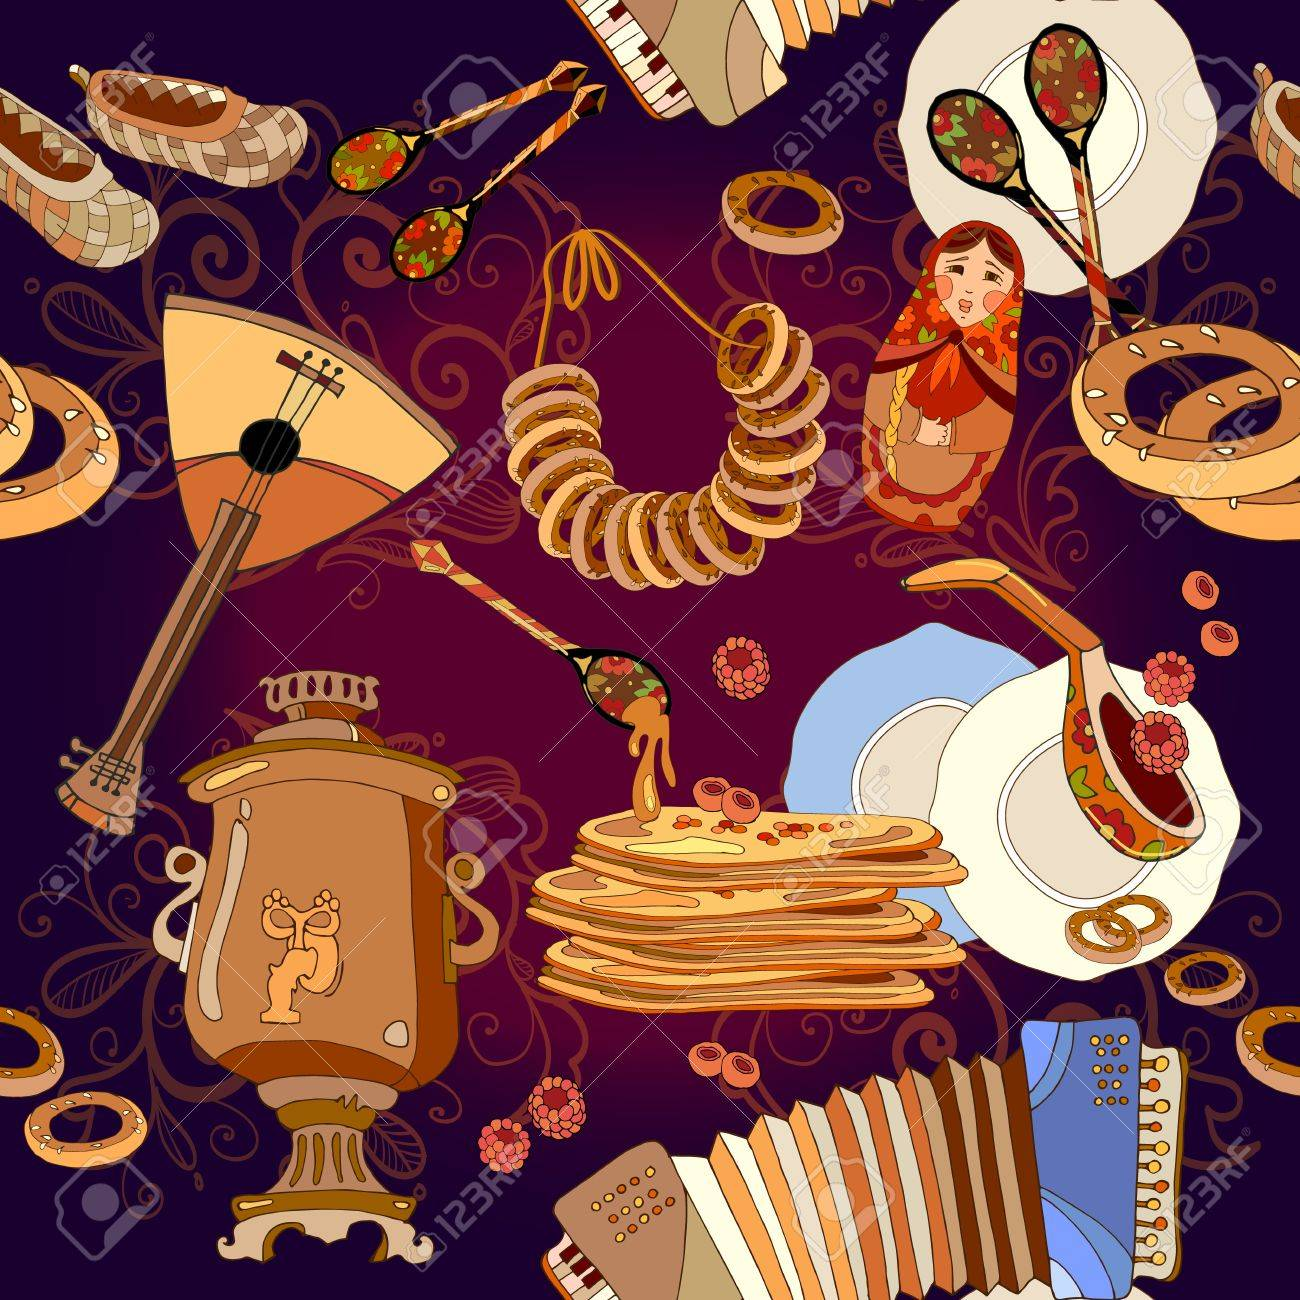 russian cuisine seamless pattern pancakes samovar balalaika russian cuisine seamless pattern pancakes samovar balalaika russian culture and traditions stock